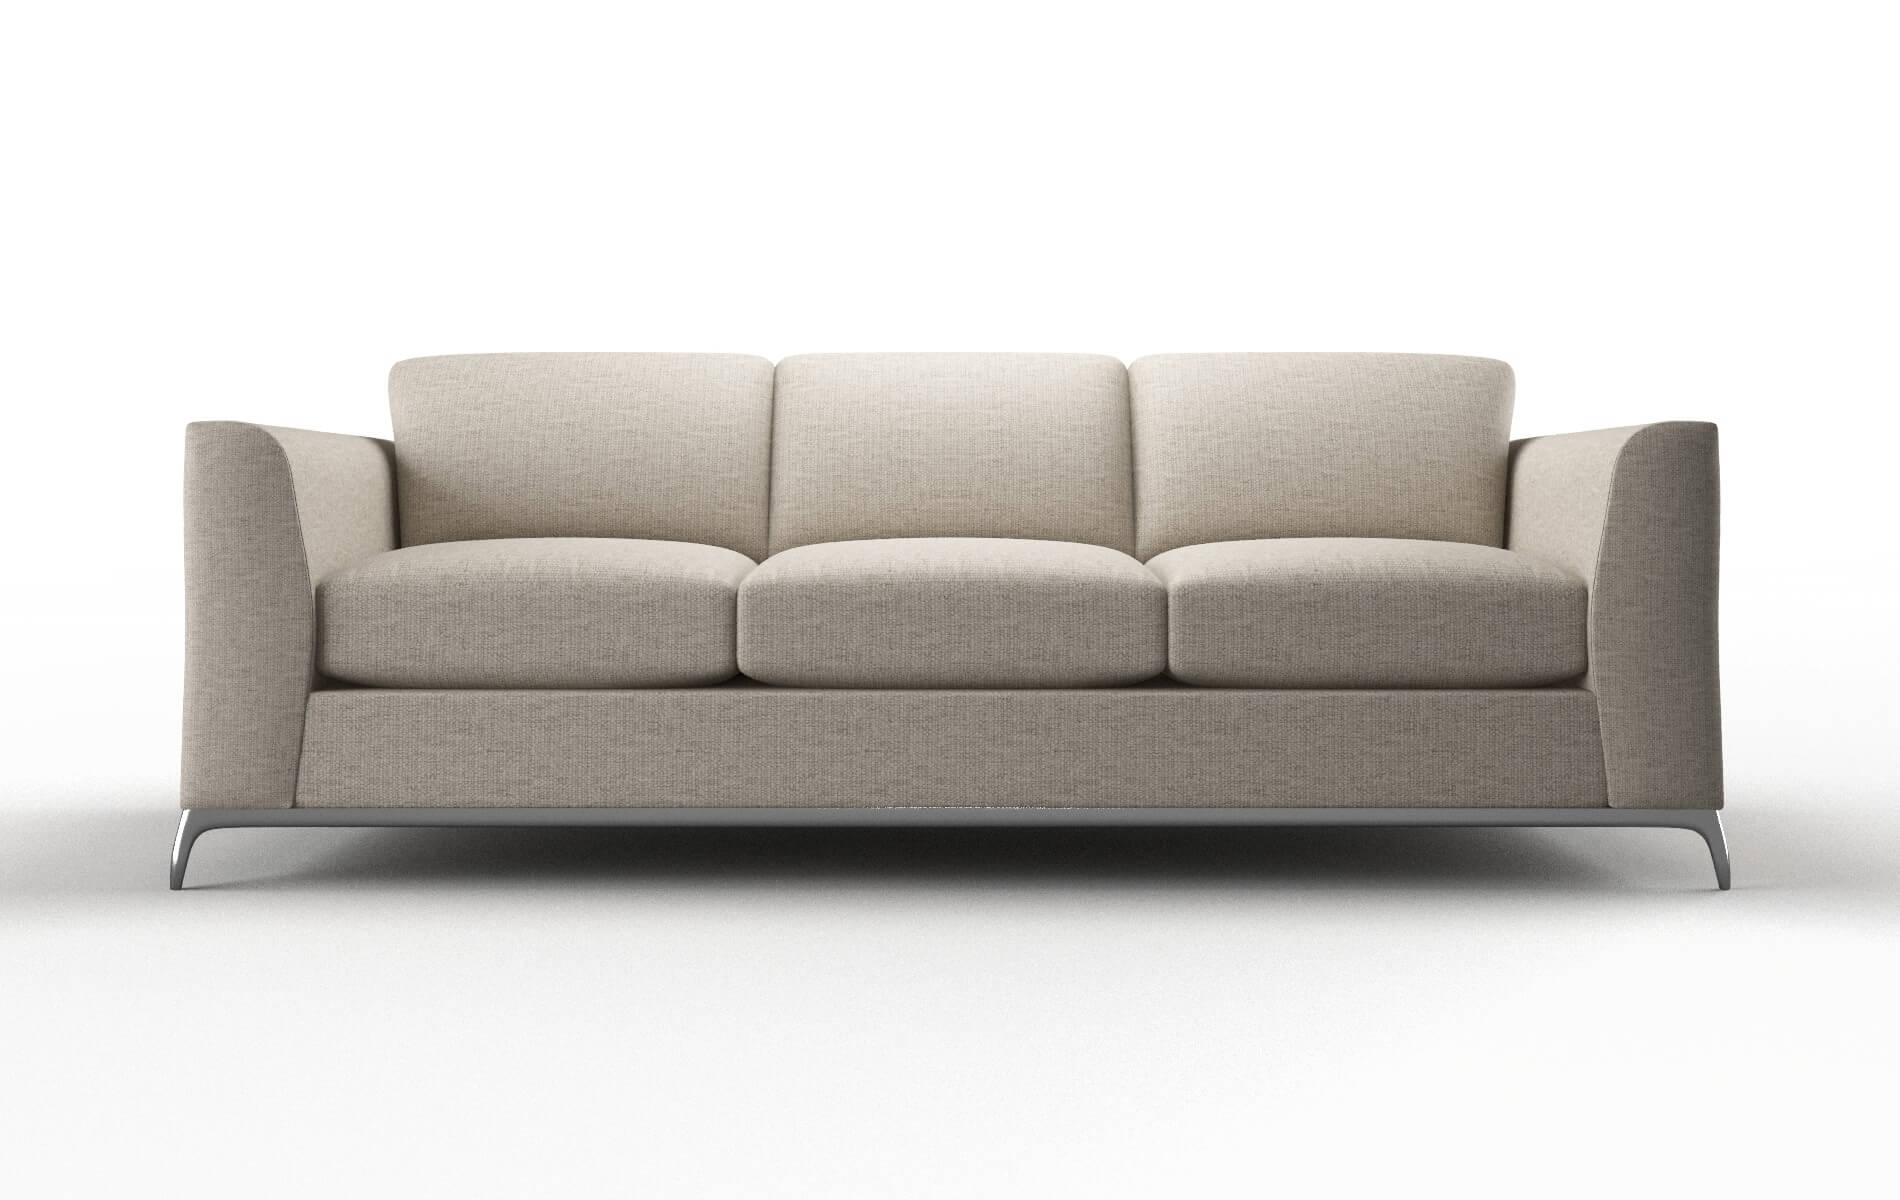 Toronto Parker Wheat Sofa metal legs 1